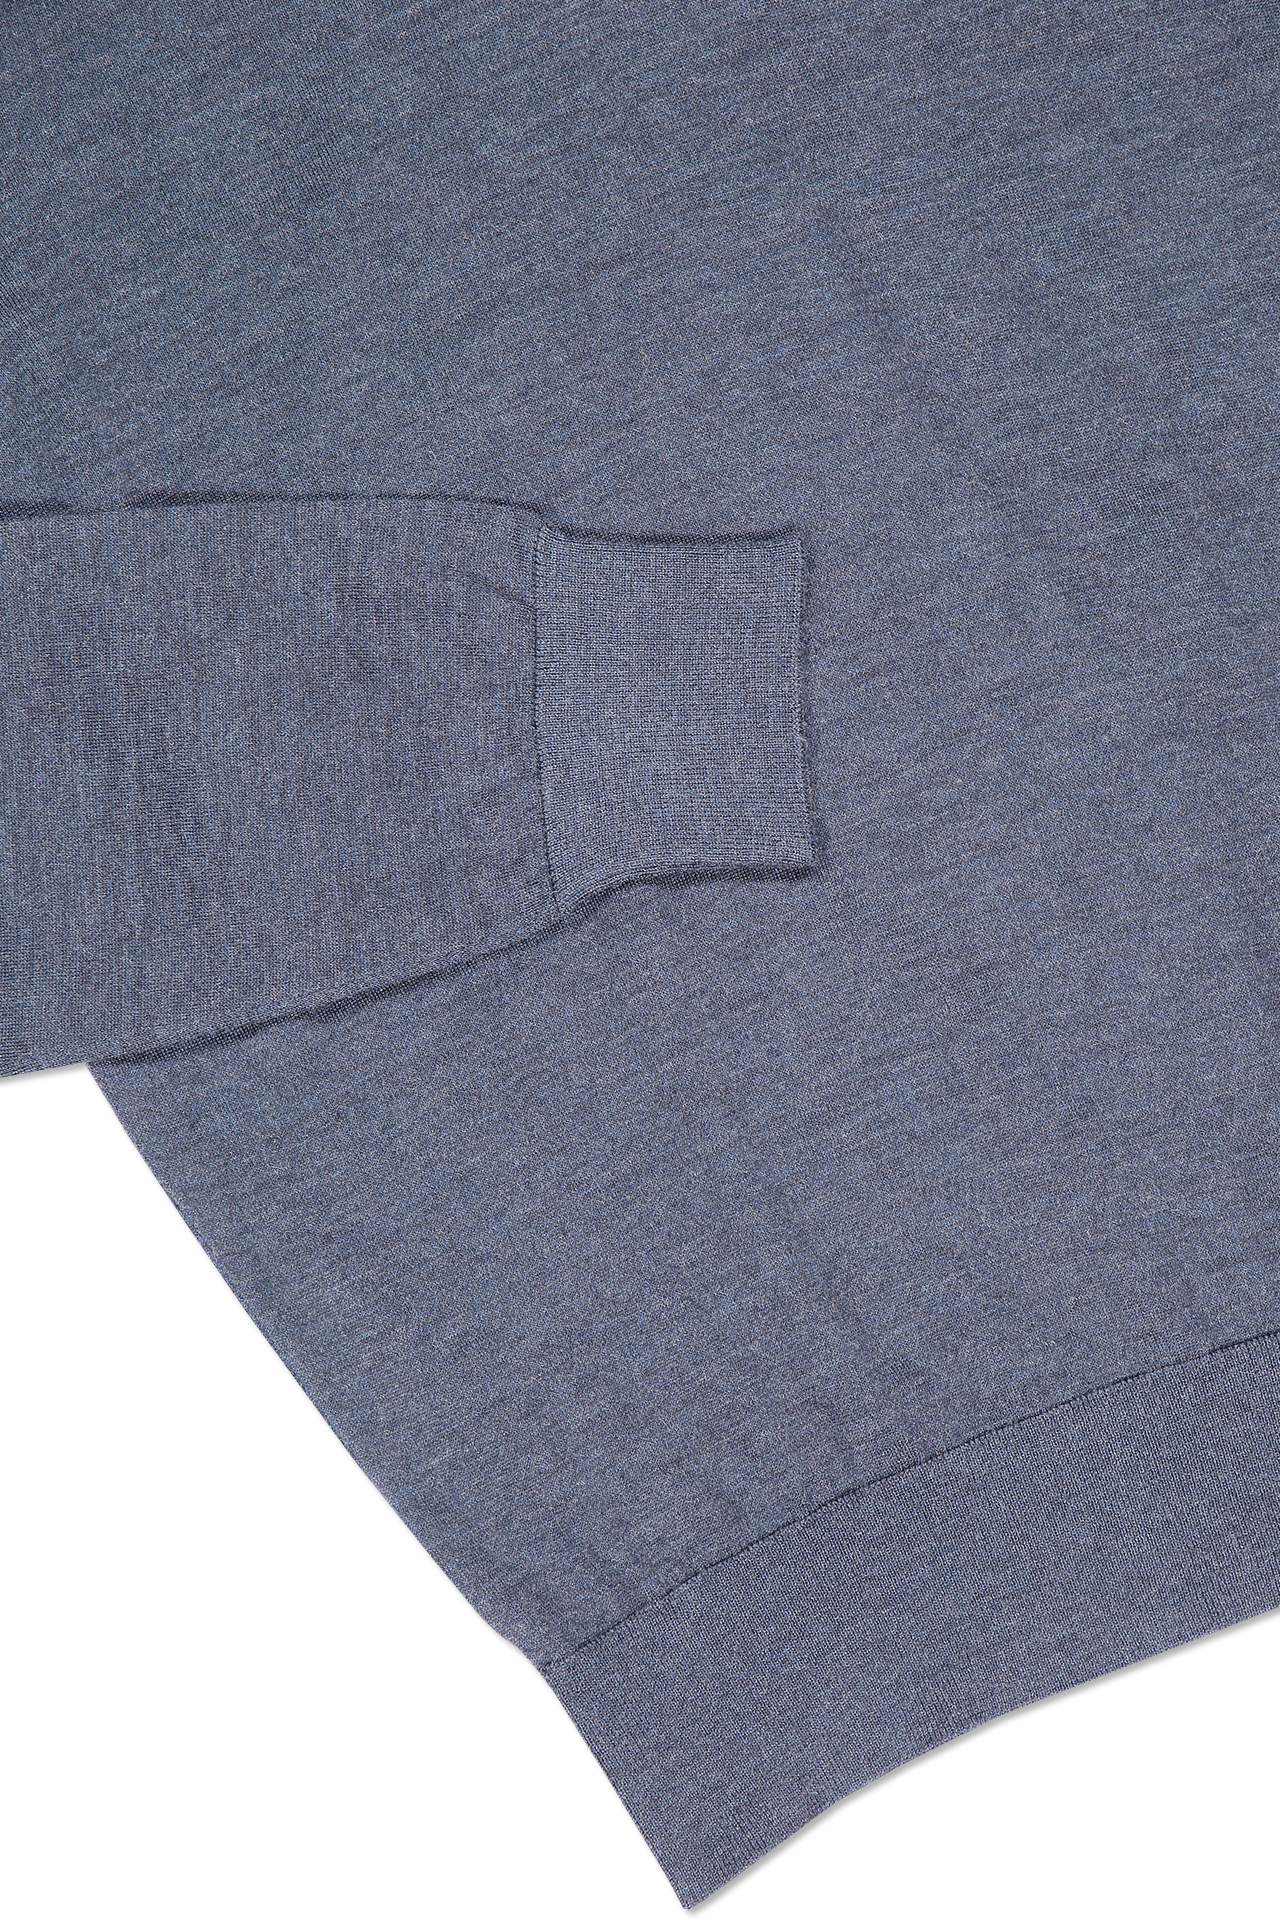 Hemline and cuff detail image of Ermenegildo Zegna Cashseta Long Sleeve Polo Navy